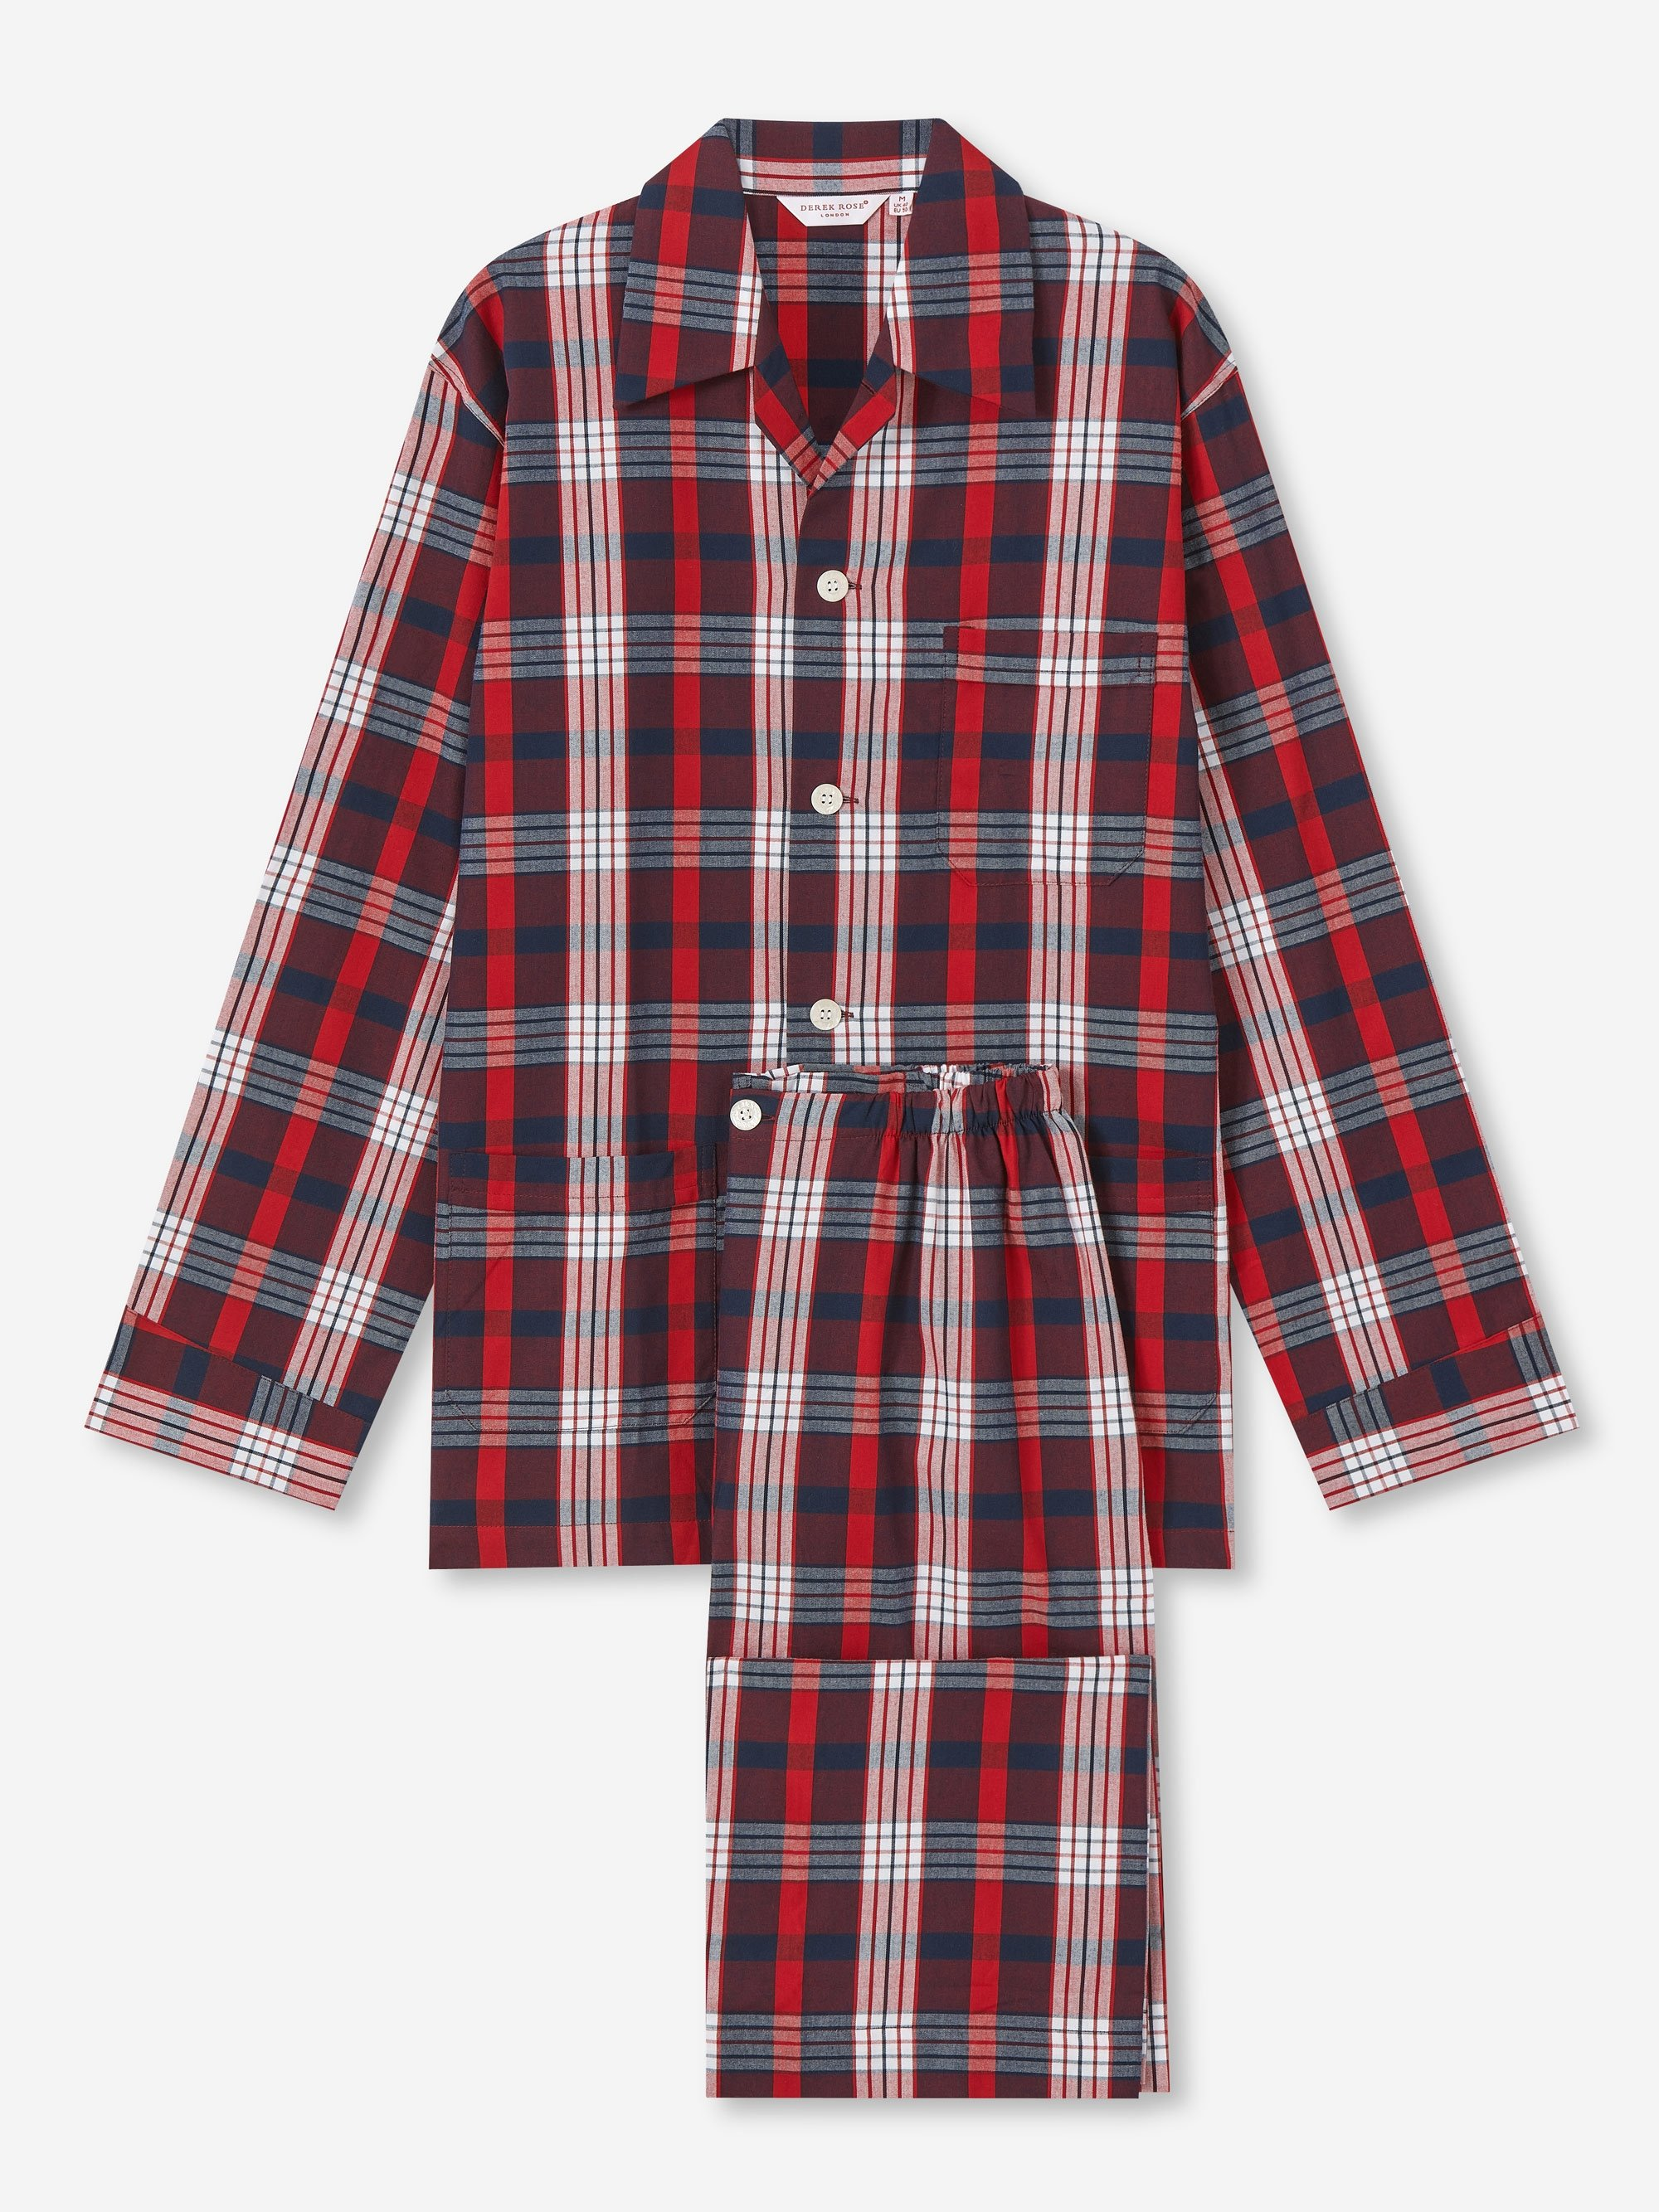 Men's Classic Fit Pyjamas Ranga 40 Brushed Cotton Check Red